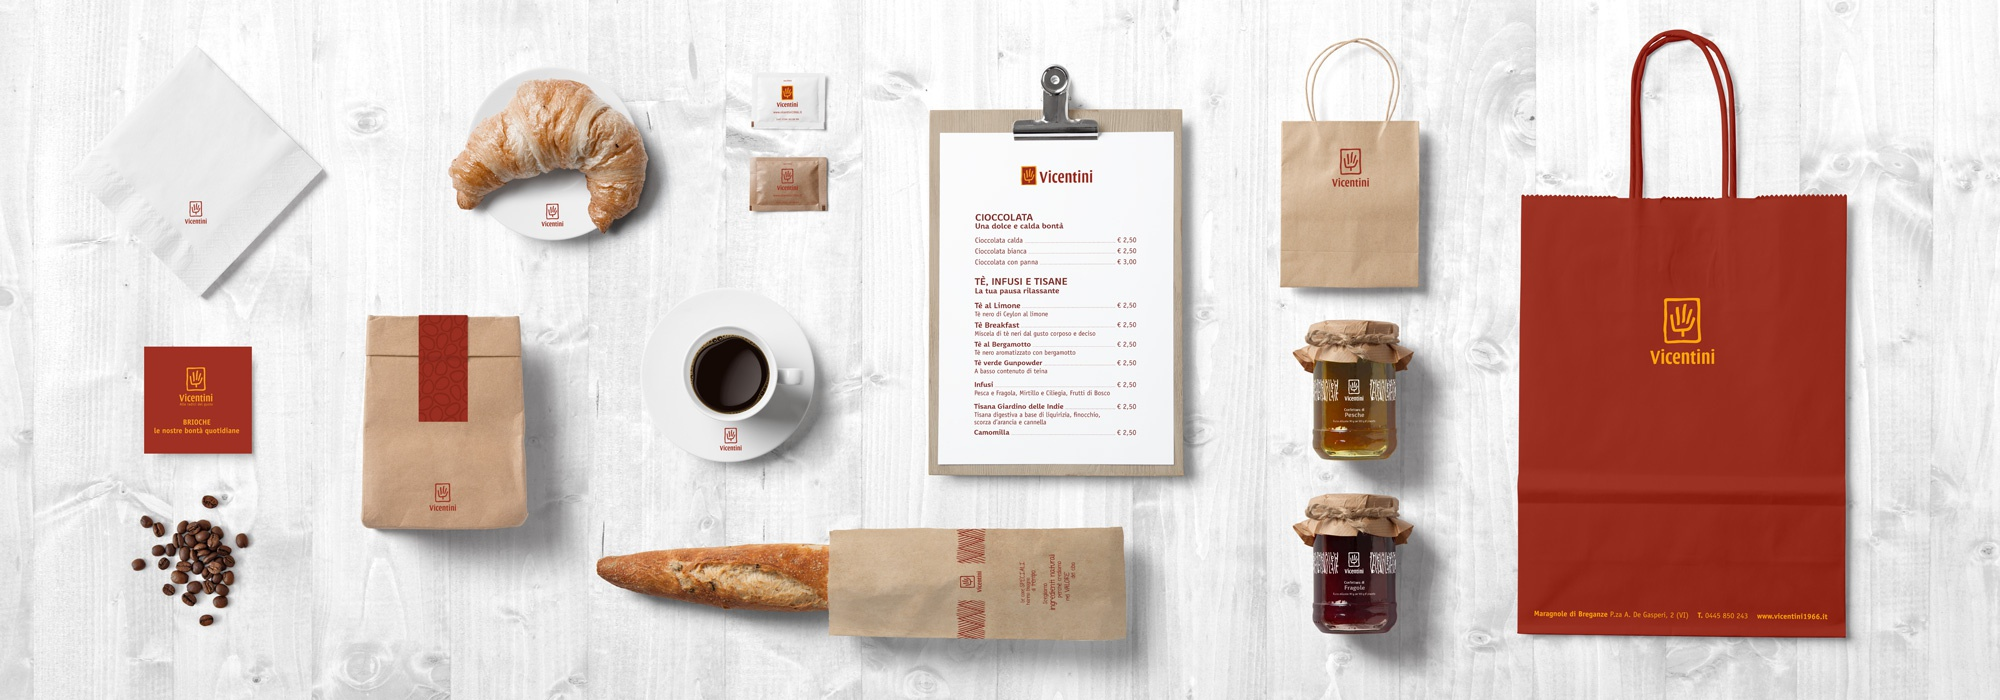 Brand Identity - Product - Packaging - Vicentini